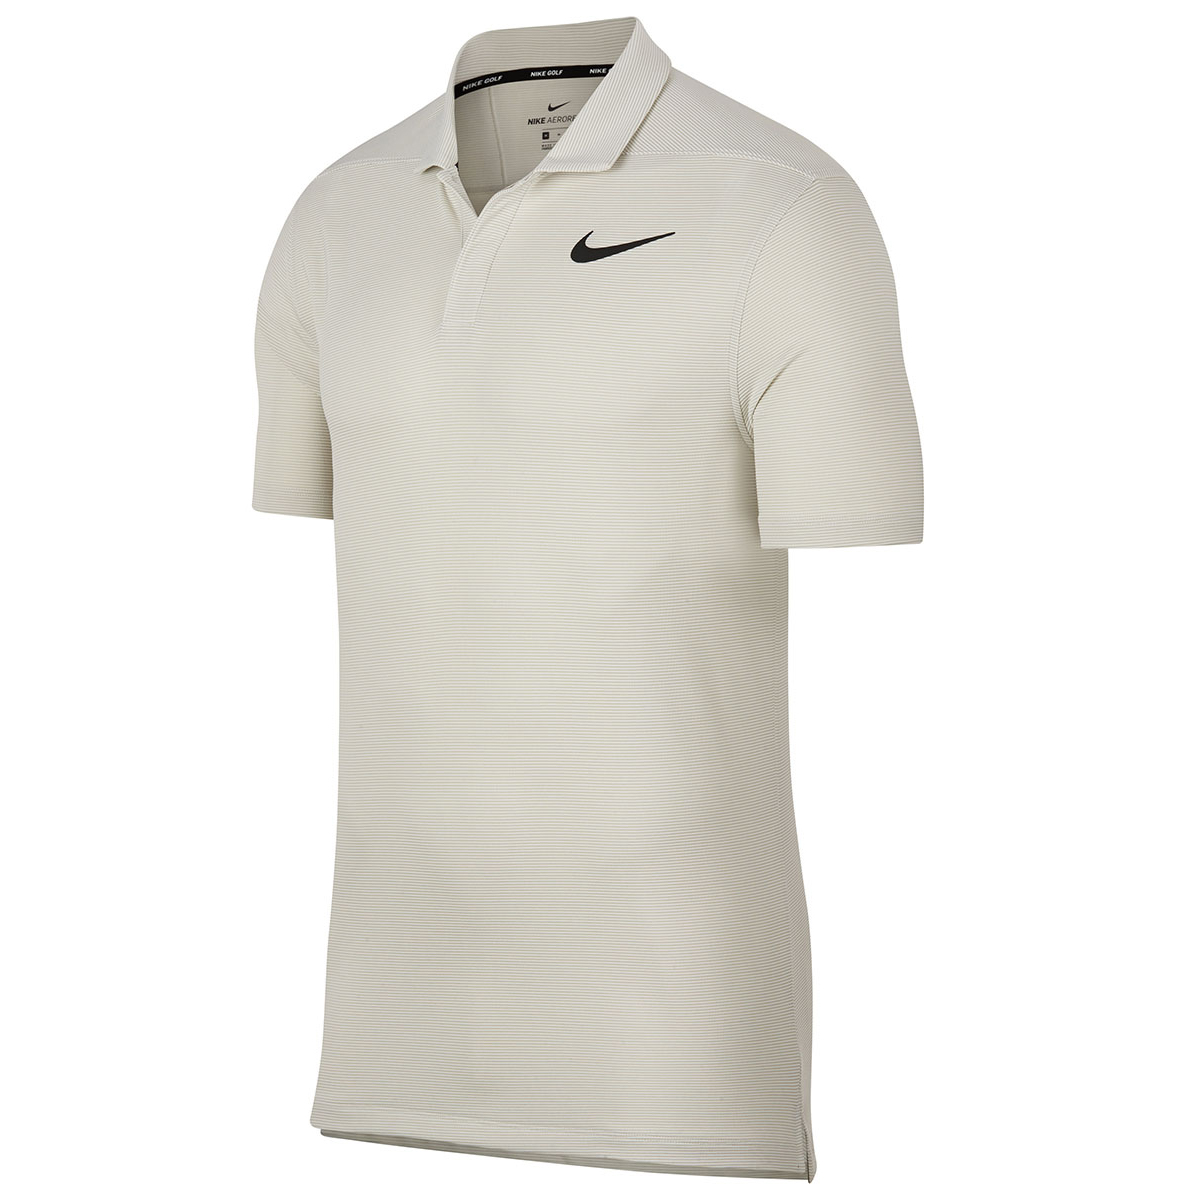 d8b69850f Nike Golf AeroReact Victory Polo Shirt from american golf